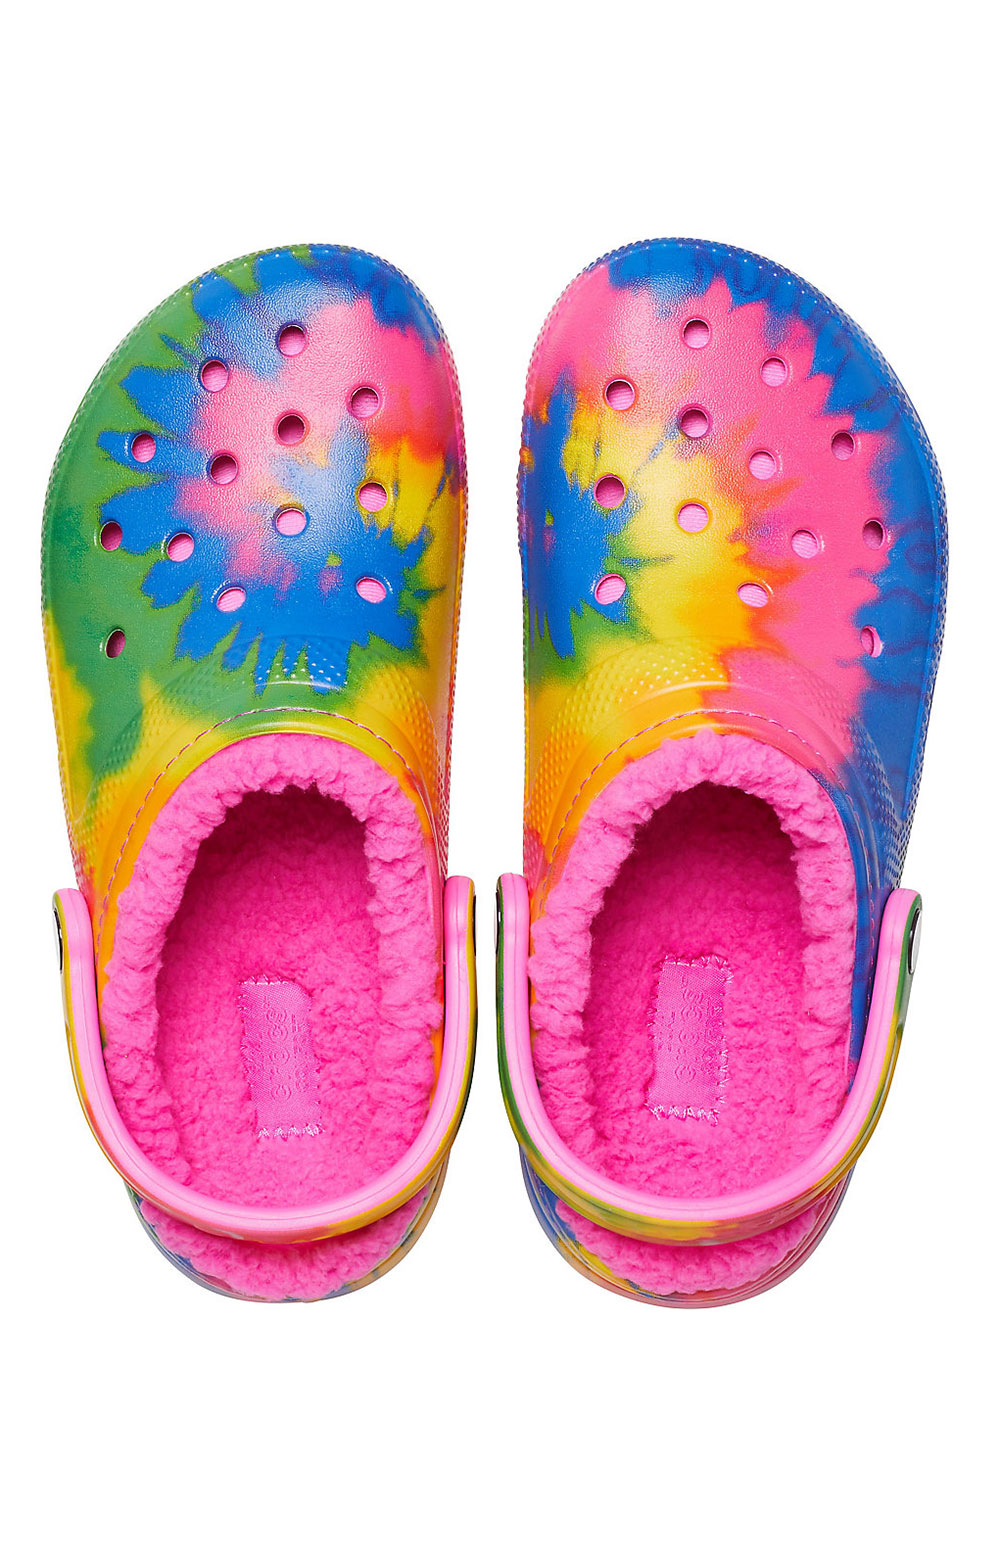 Classic Lined Tie-Dye Clogs - Electric Pink/Multi 4